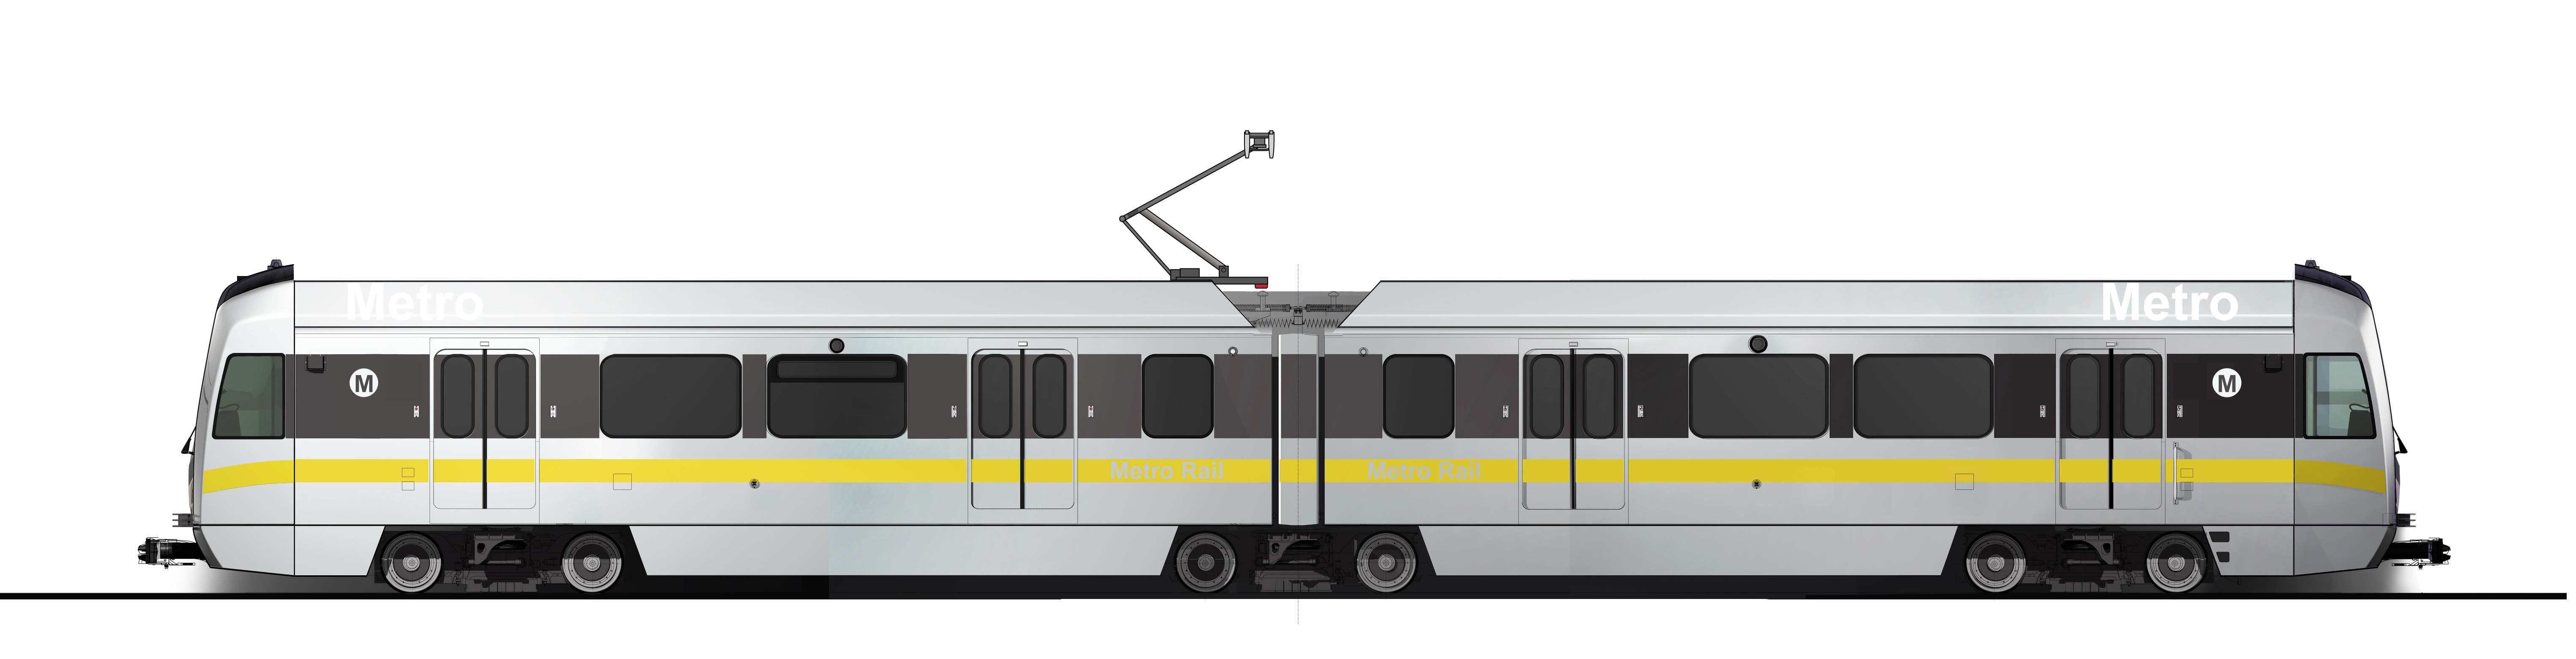 metro board approves contract to purchase new light rail afternoon clip art images morning afternoon night clipart